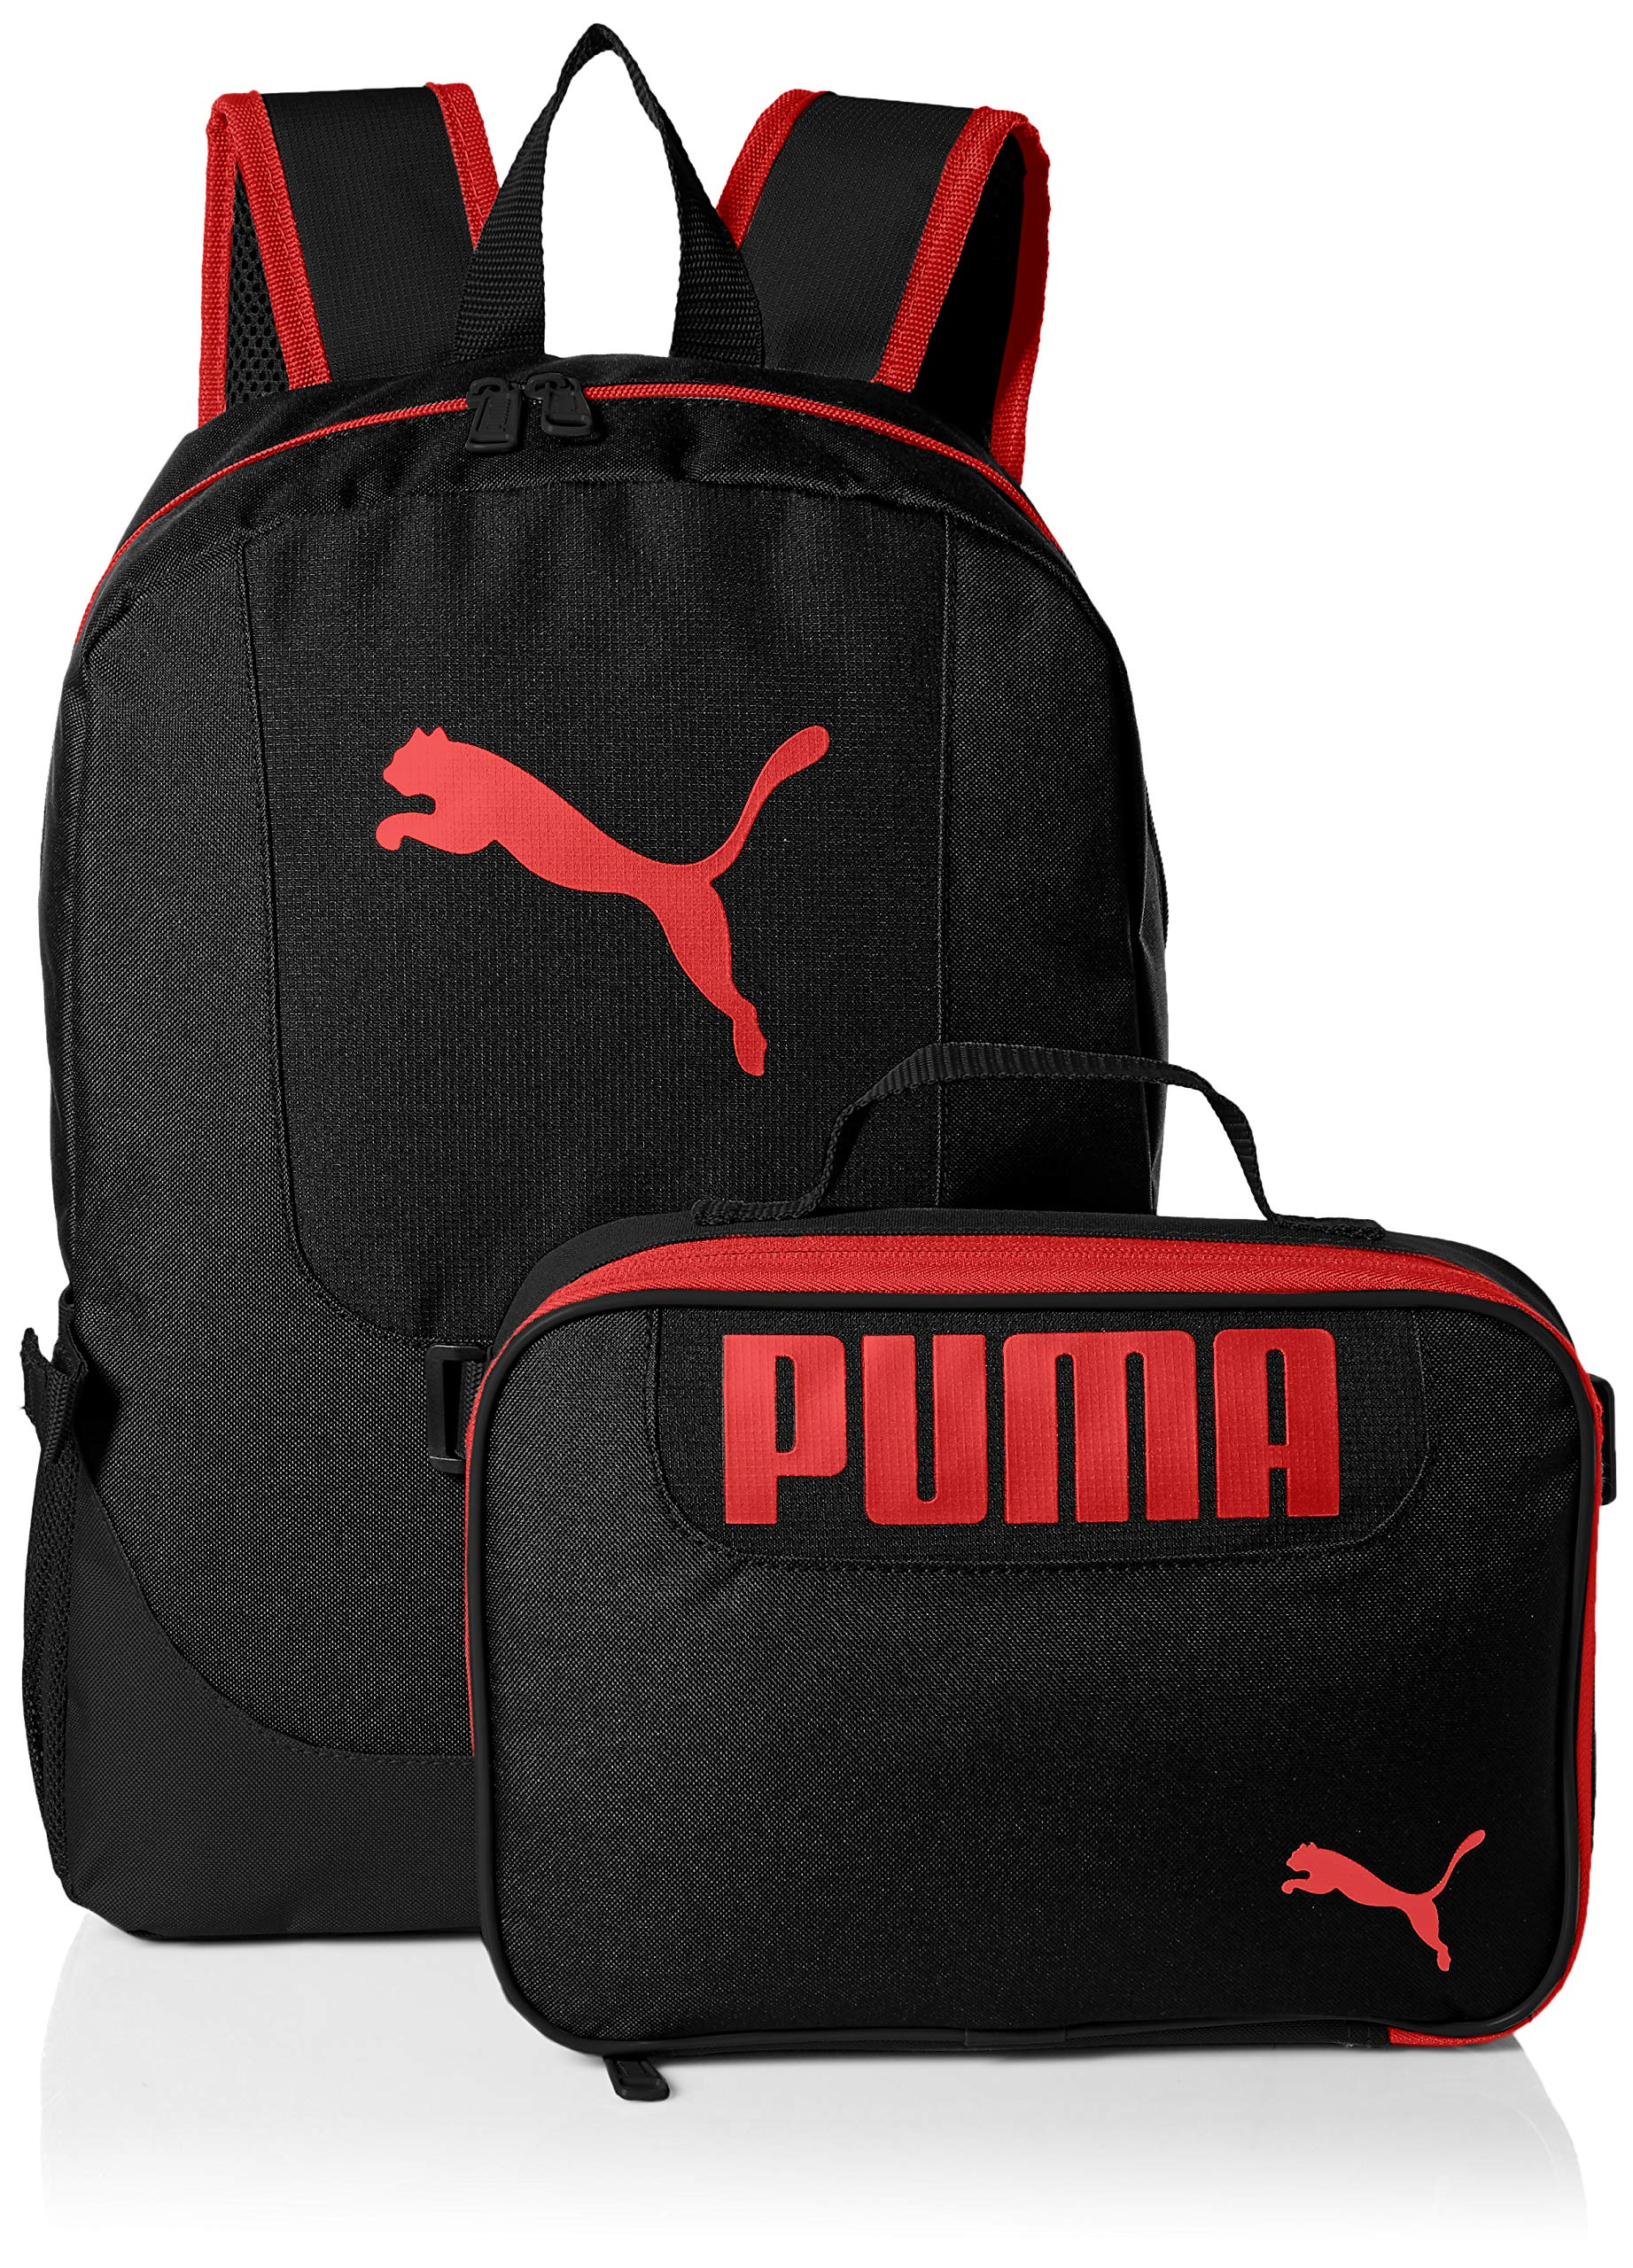 PUMA Lunch Backpack Combo black